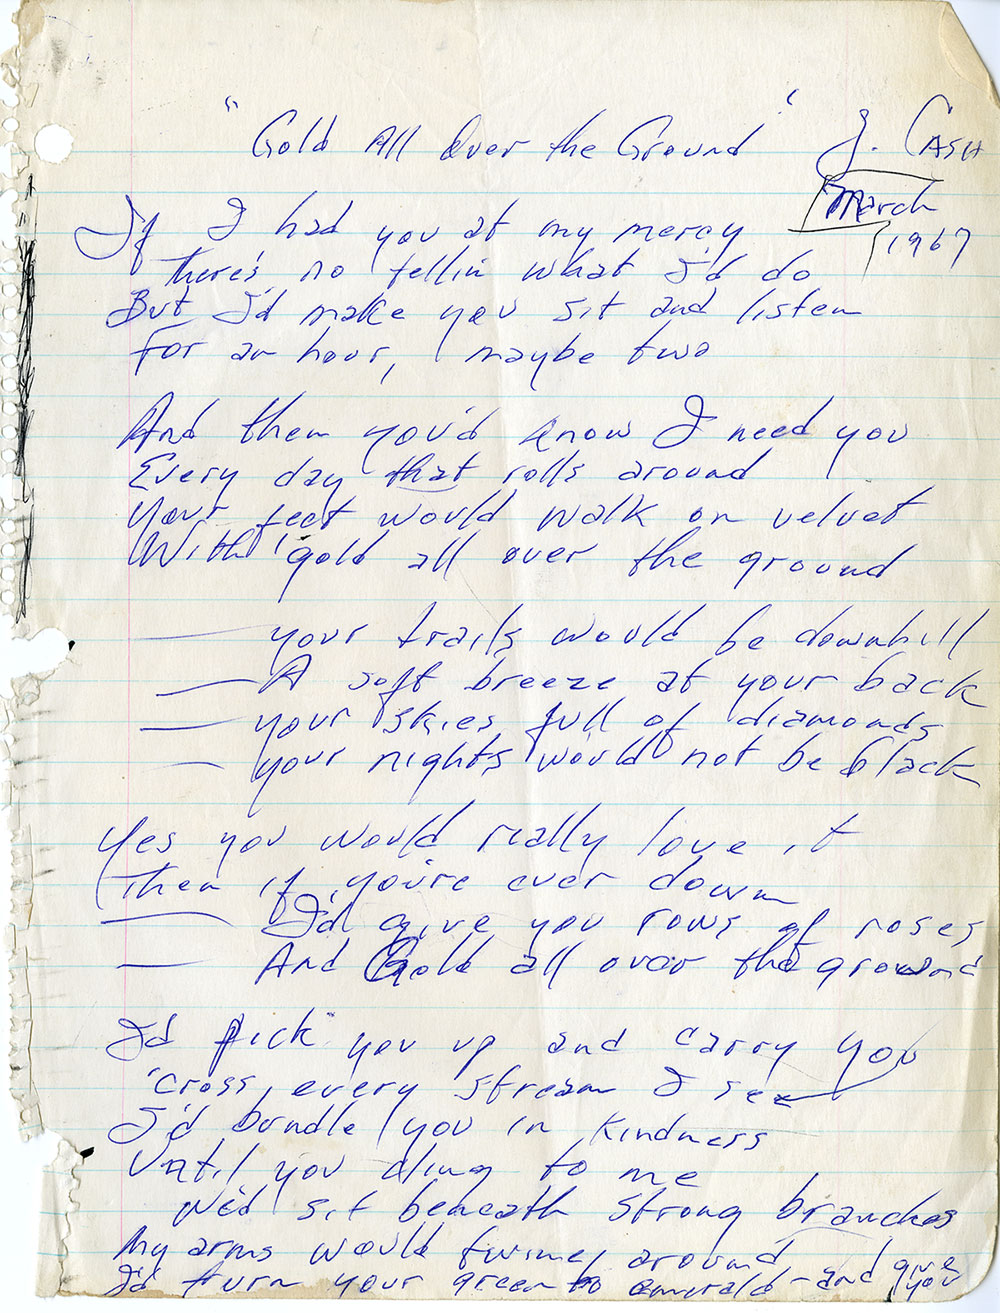 Johnny Cash Gold All Over The Ground handwritten poem